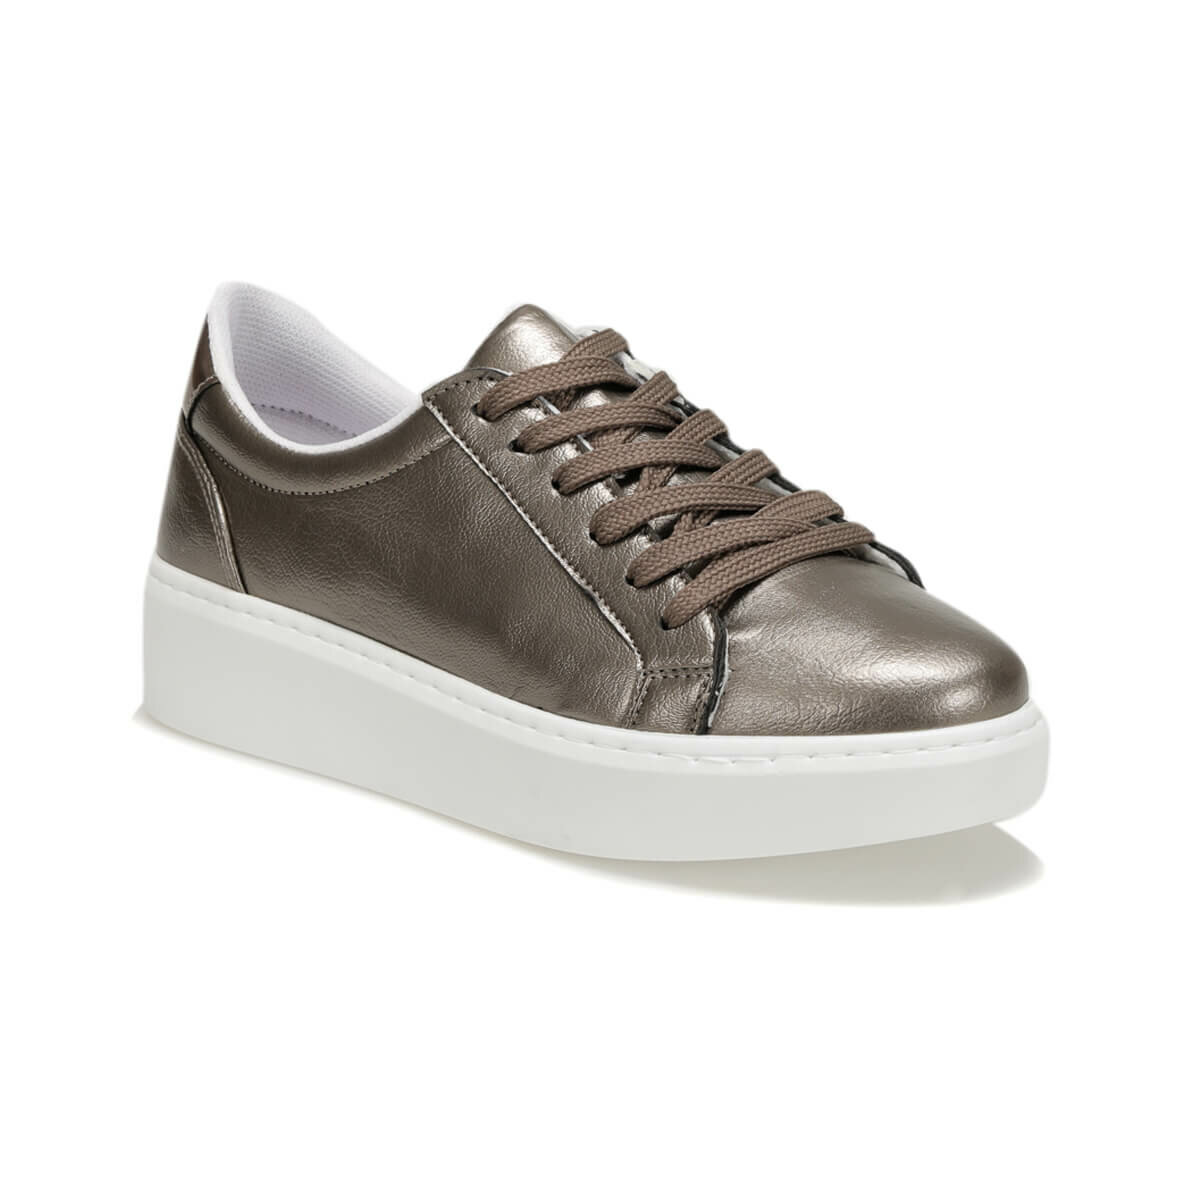 FLO MAZZOLA52Z SKIN Gray Women 'S Sneaker Shoes BUTIGO